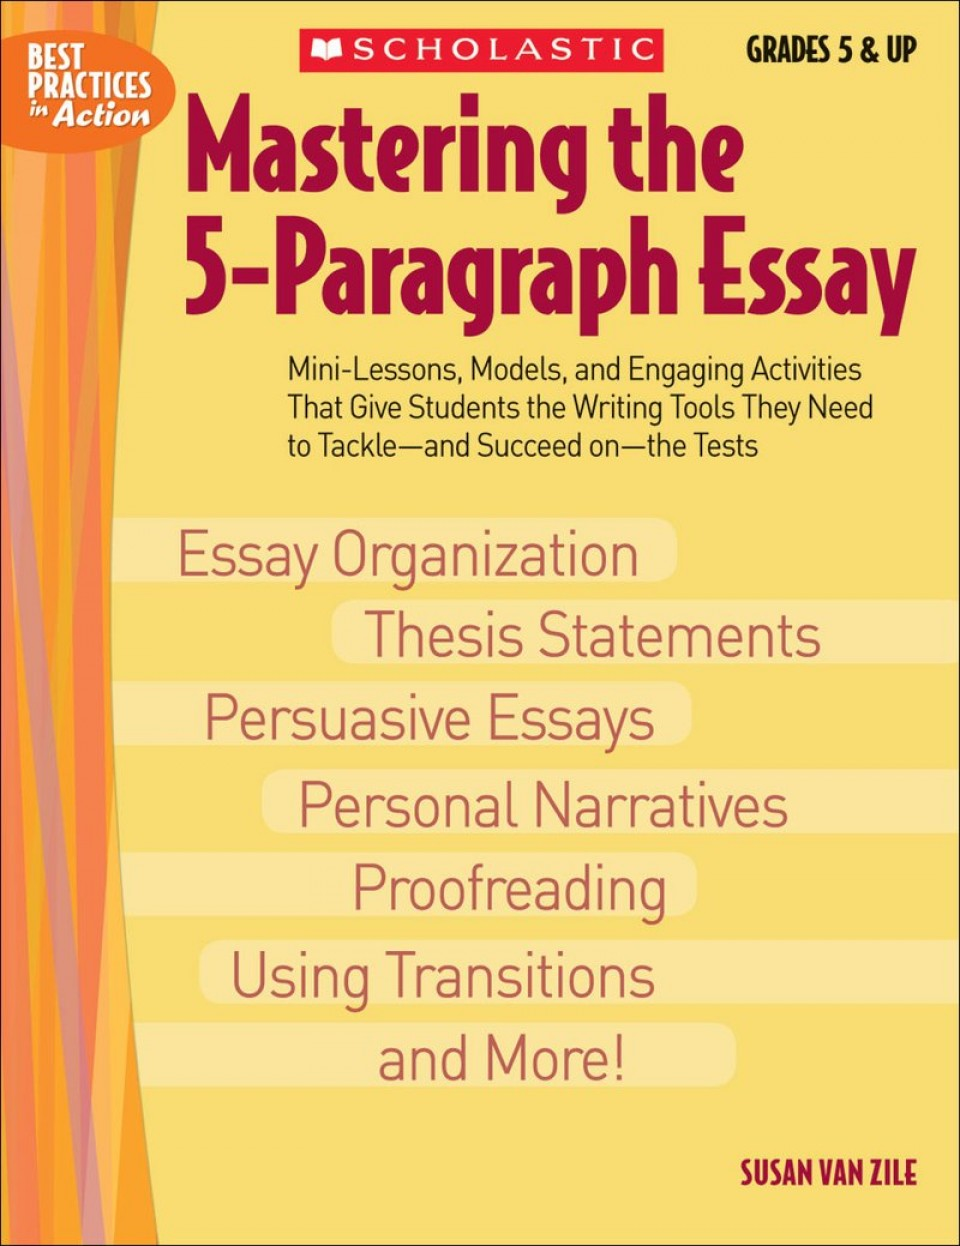 017 Paragraph Essay Example 9780439635257 Mres Singular 5 Argumentative Graphic Organizer Pdf Topics For Middle School Elementary 960